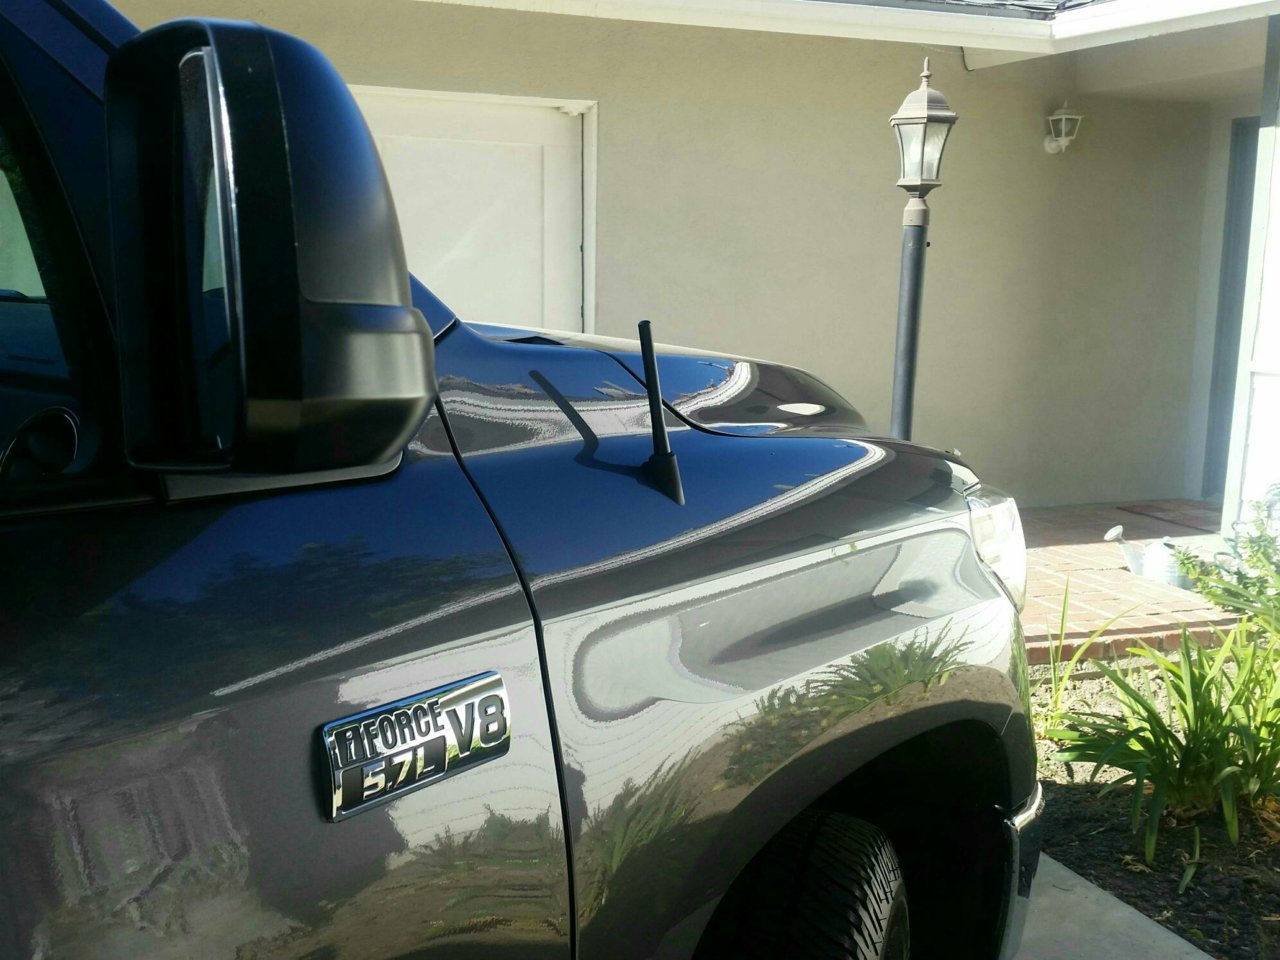 To stubby antenna or not to stubby antenna? | Toyota Tundra